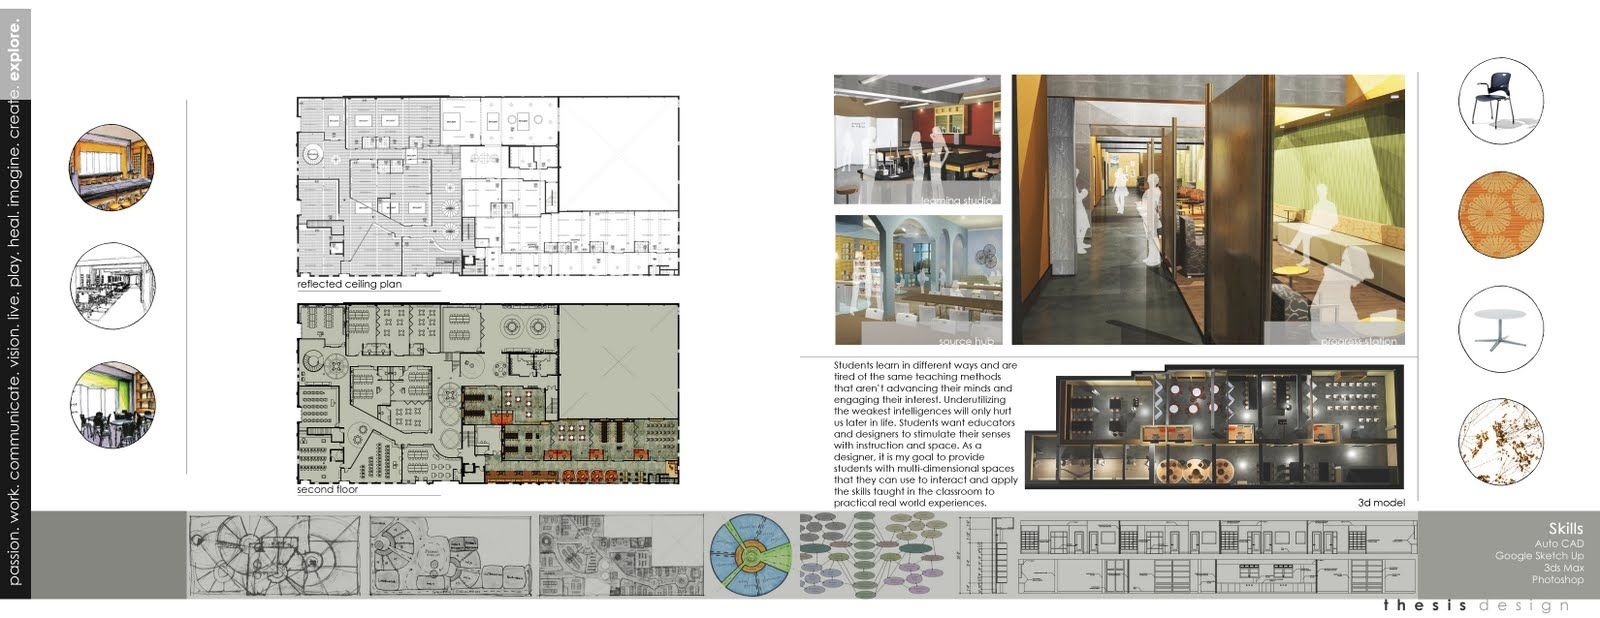 Attractive interior design student portfolio book interior - Interior design portfolio samples ...